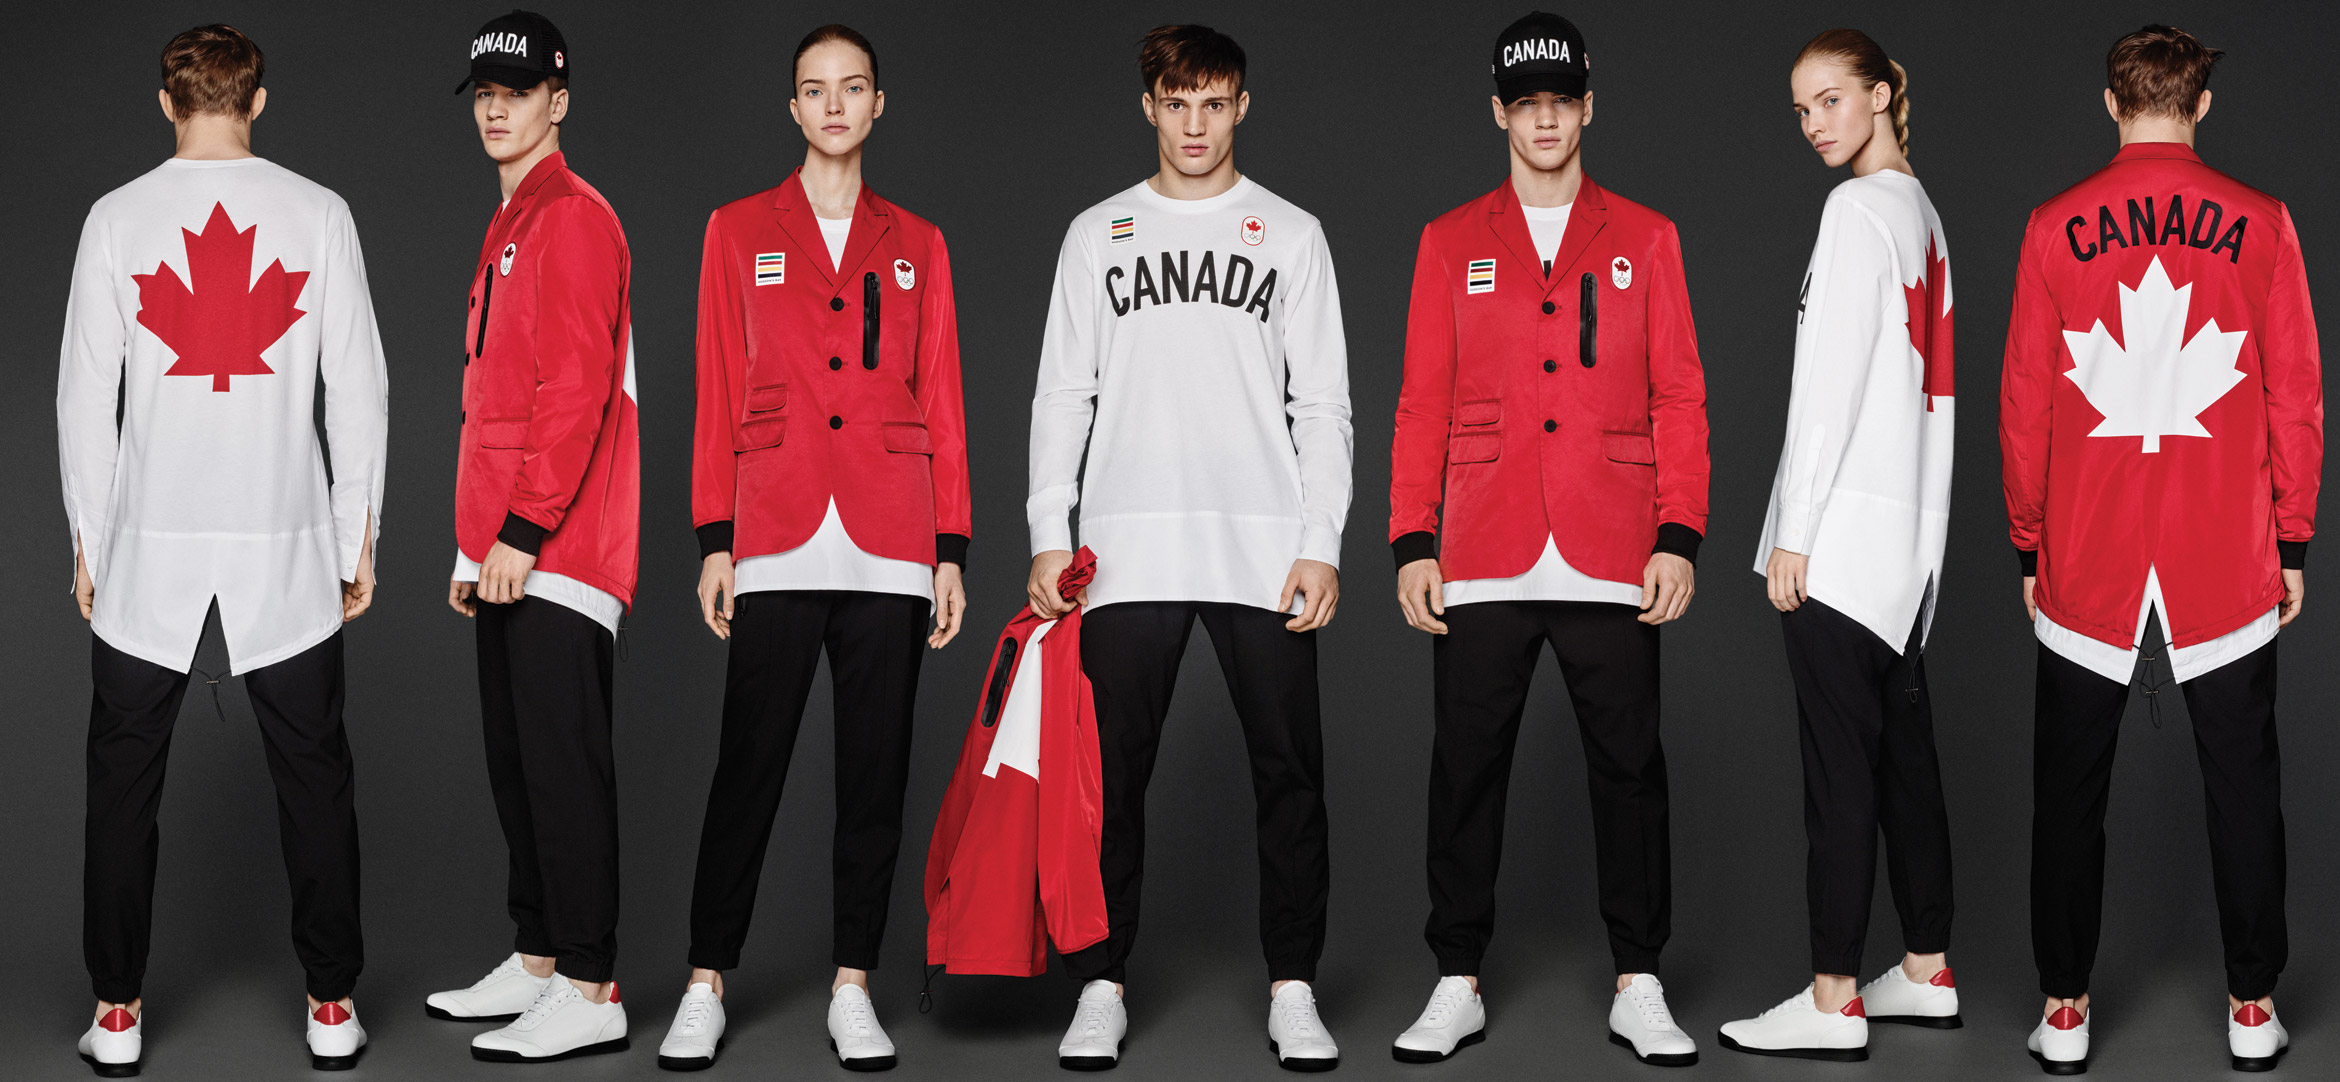 Dsquared2 Designed Team Canada's Uniforms for the 2016 Olympics Opening Ceremony